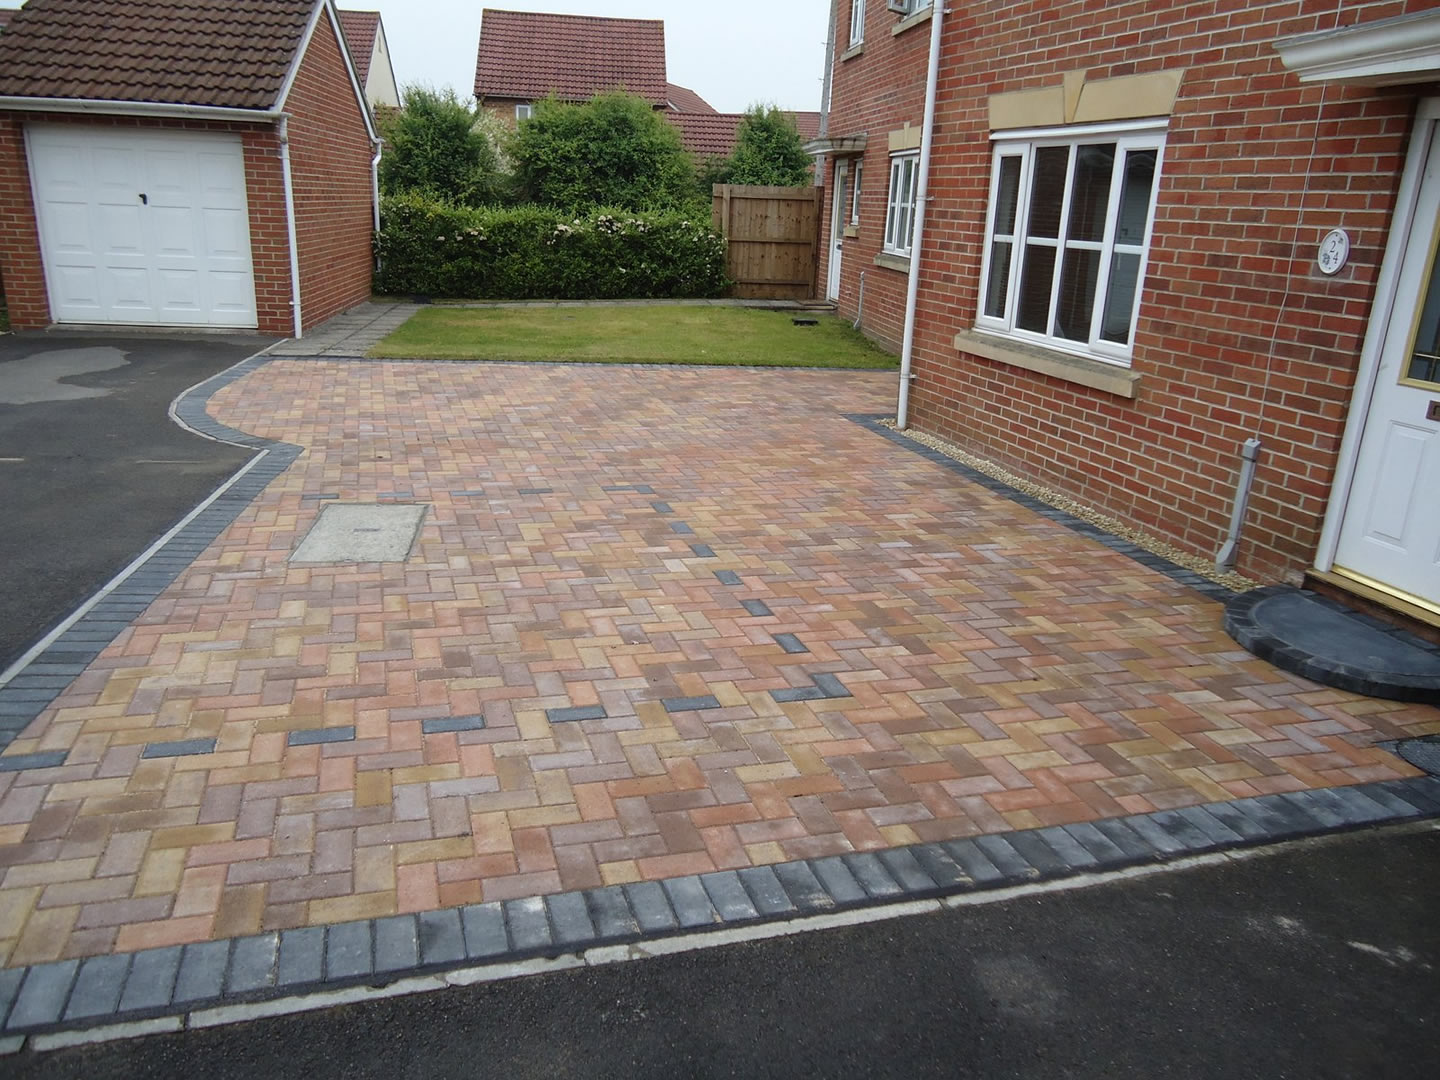 Garden Patio & Paving - 4H01